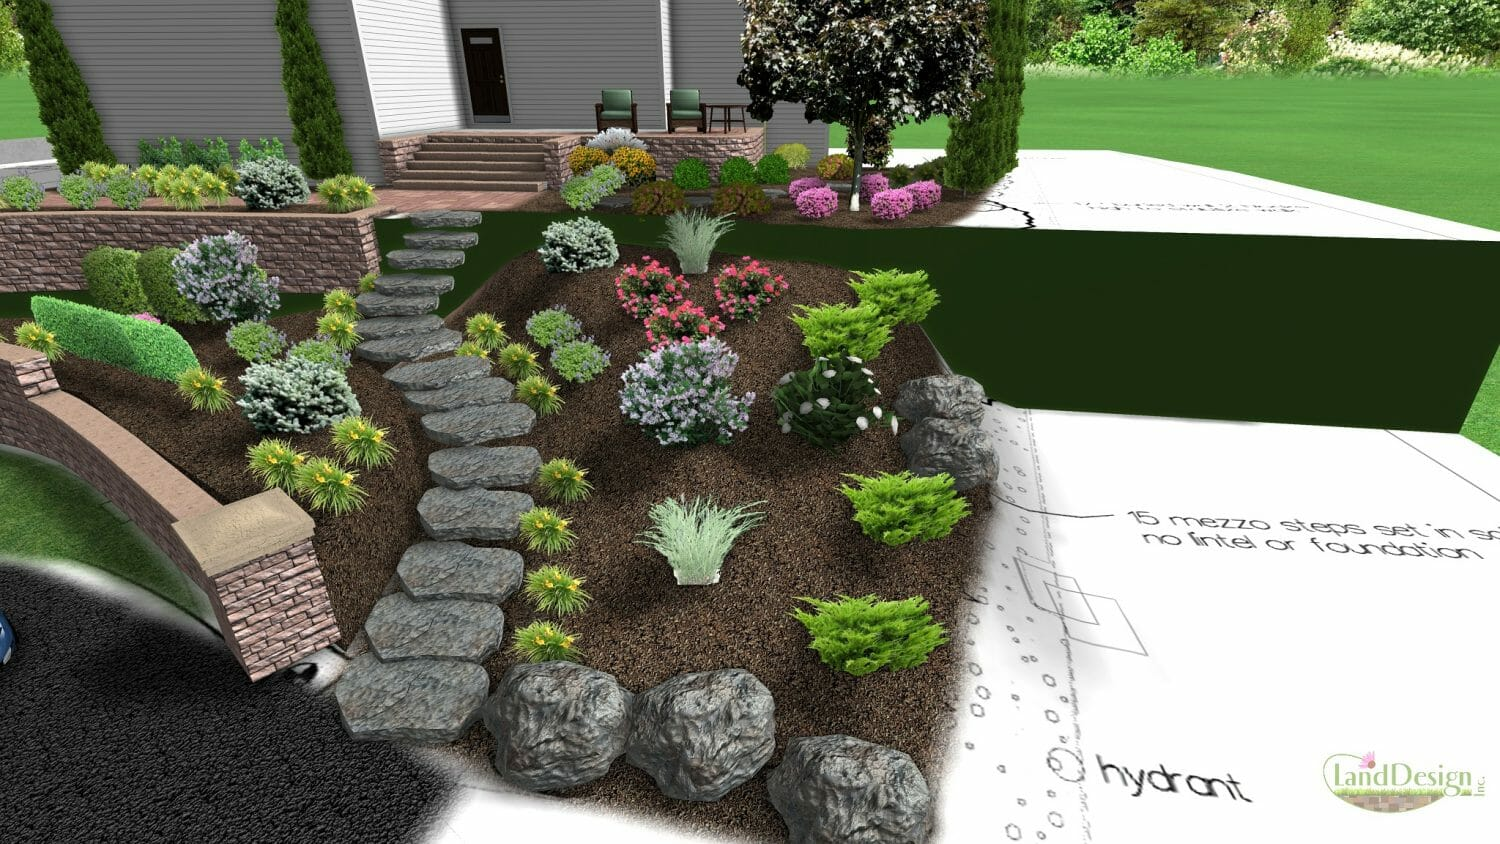 landscape planner design retaining walls landscaping on a slope ideas